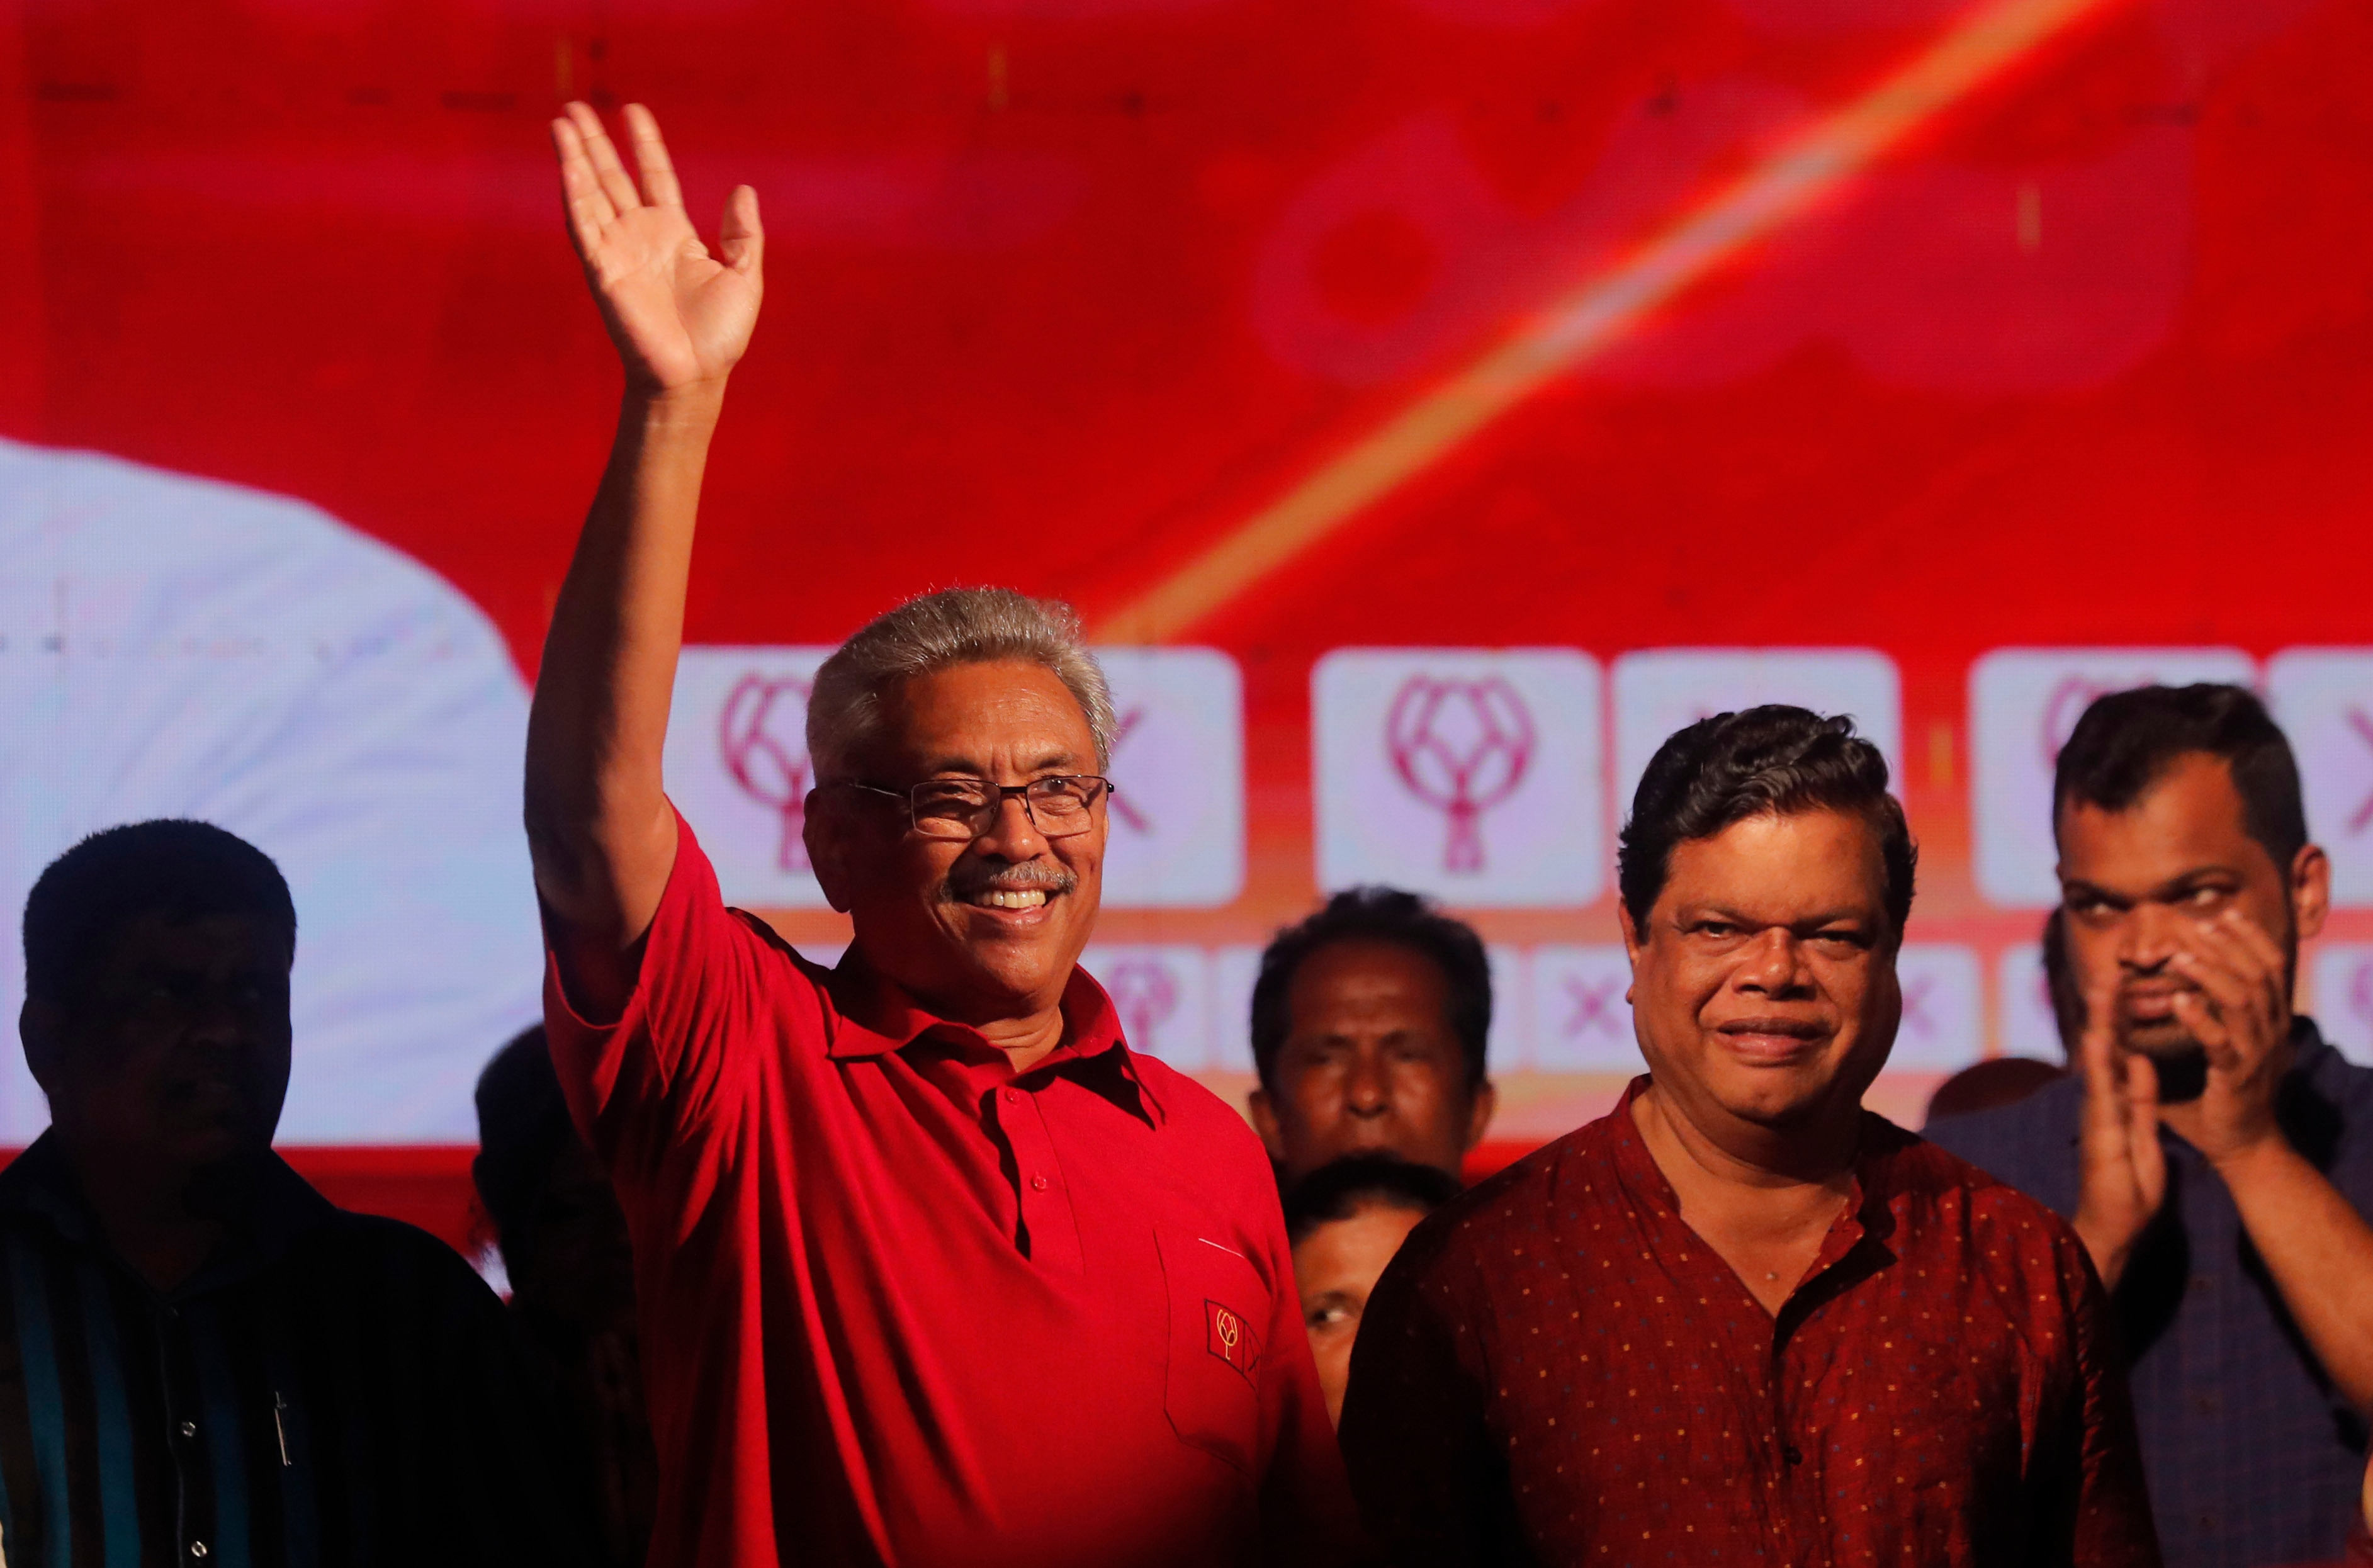 Sri Lanka's former defence secretary Gotabaya Rajapaksa is one of the front-runners in the country's Presidential election.